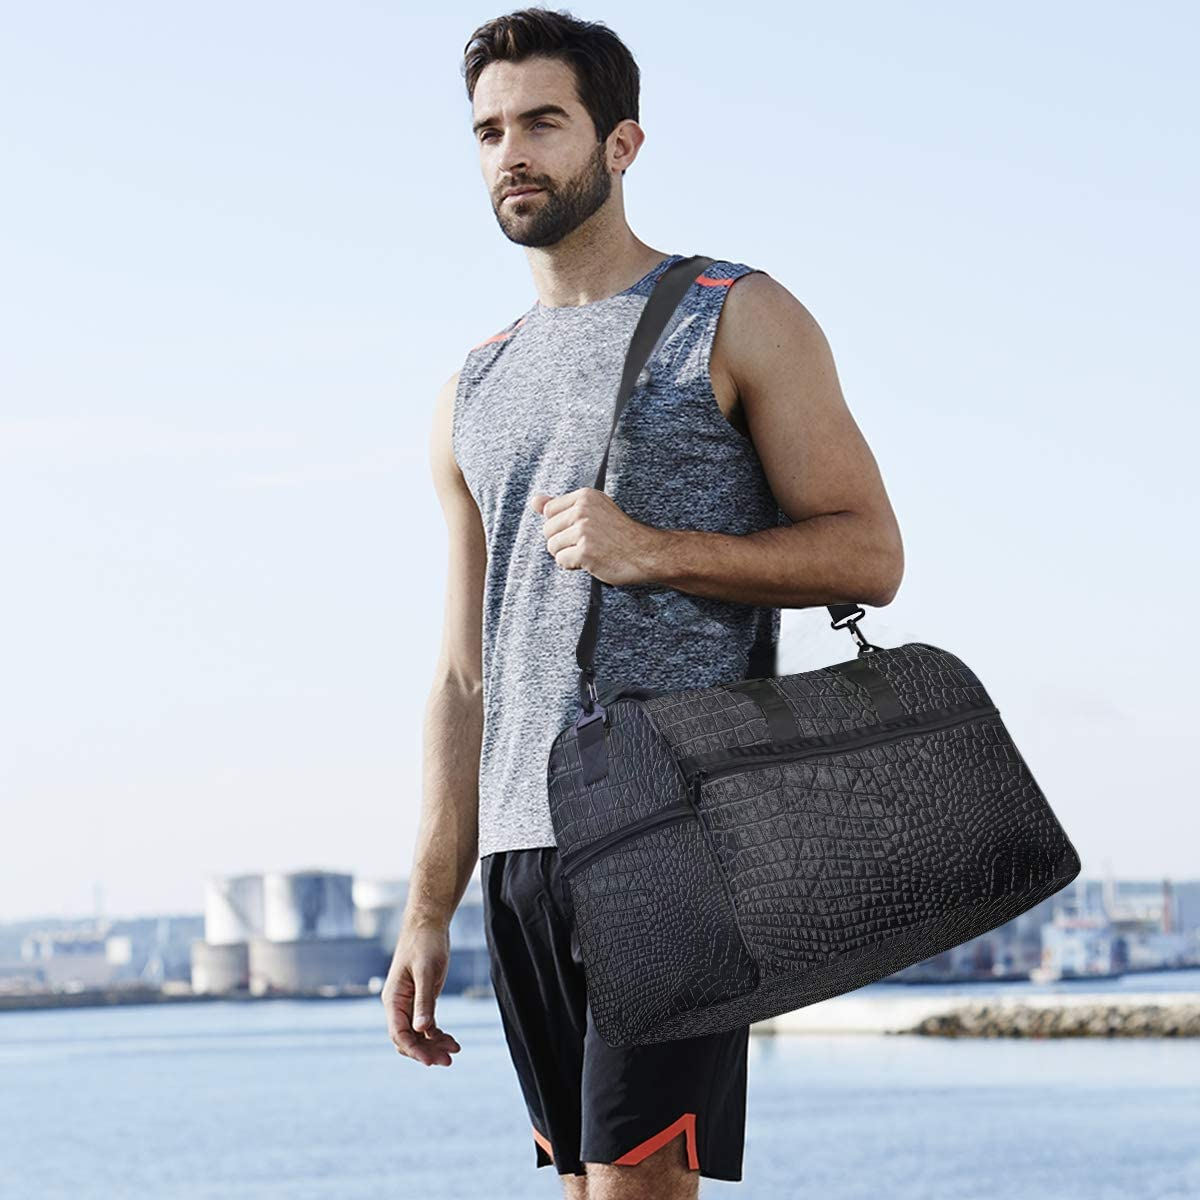 Travel Duffel Bag Luggage Sports Gym Bag With Shoes Compartment Large Capacity Lightweight Duffle Bag For Men Women